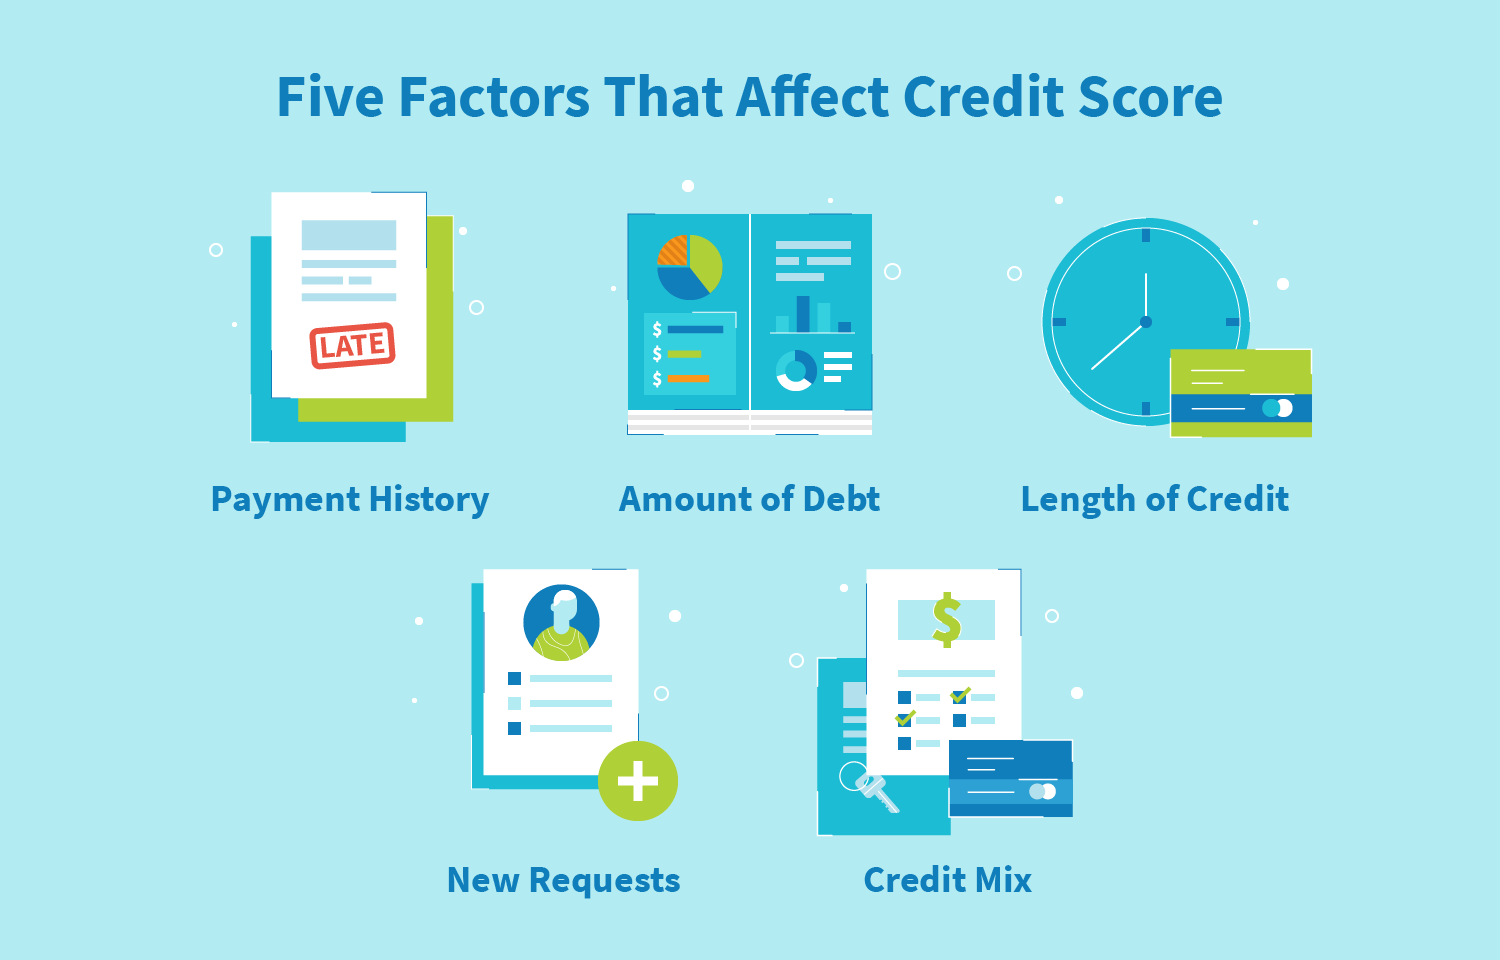 Five Factors that affect credit score - payment history, amount of debt, length of credit, new requests, and credit mix